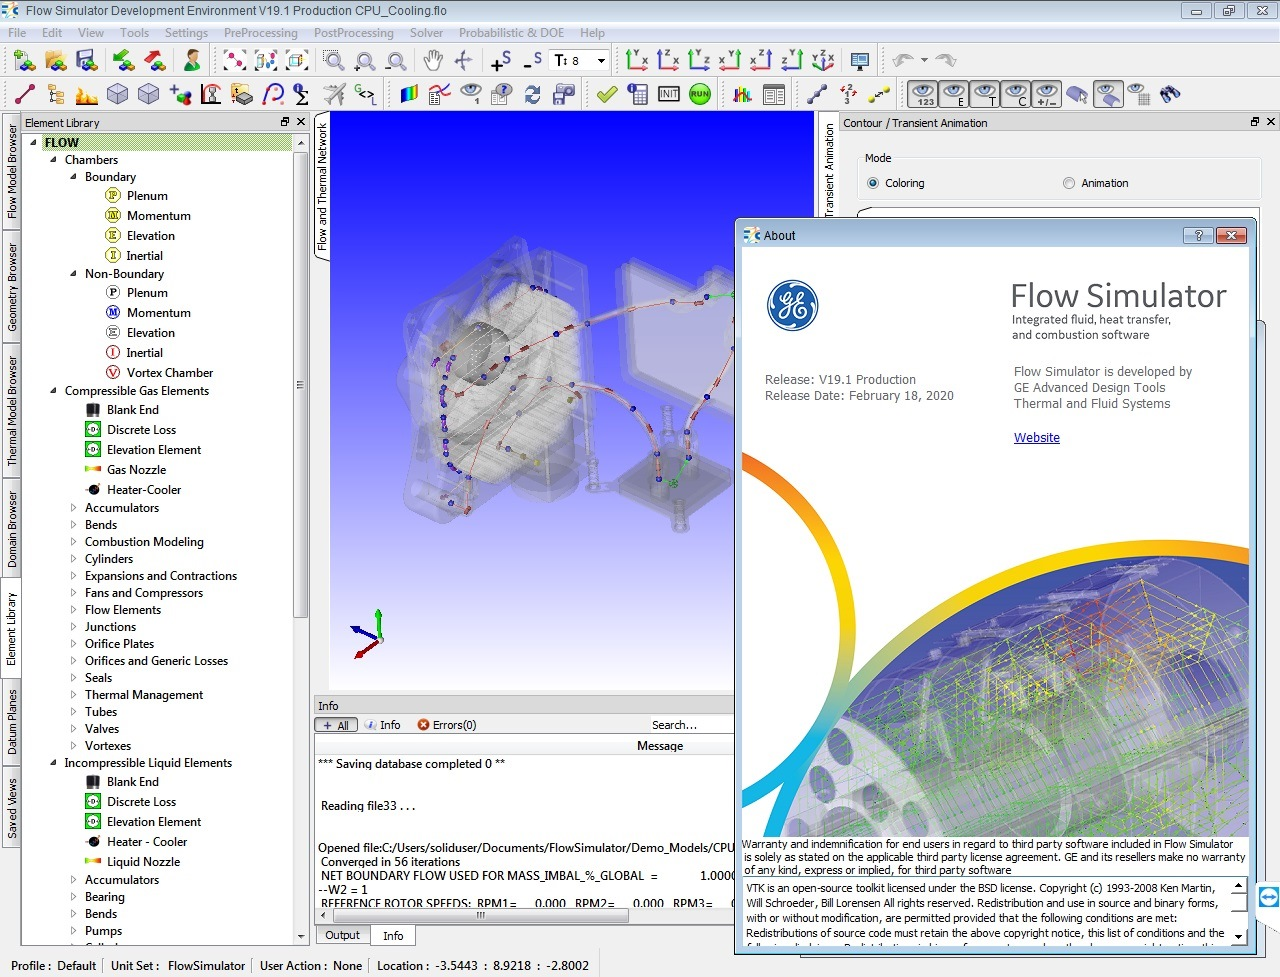 Working with Altair Flow Simulator v19.1.1 full license